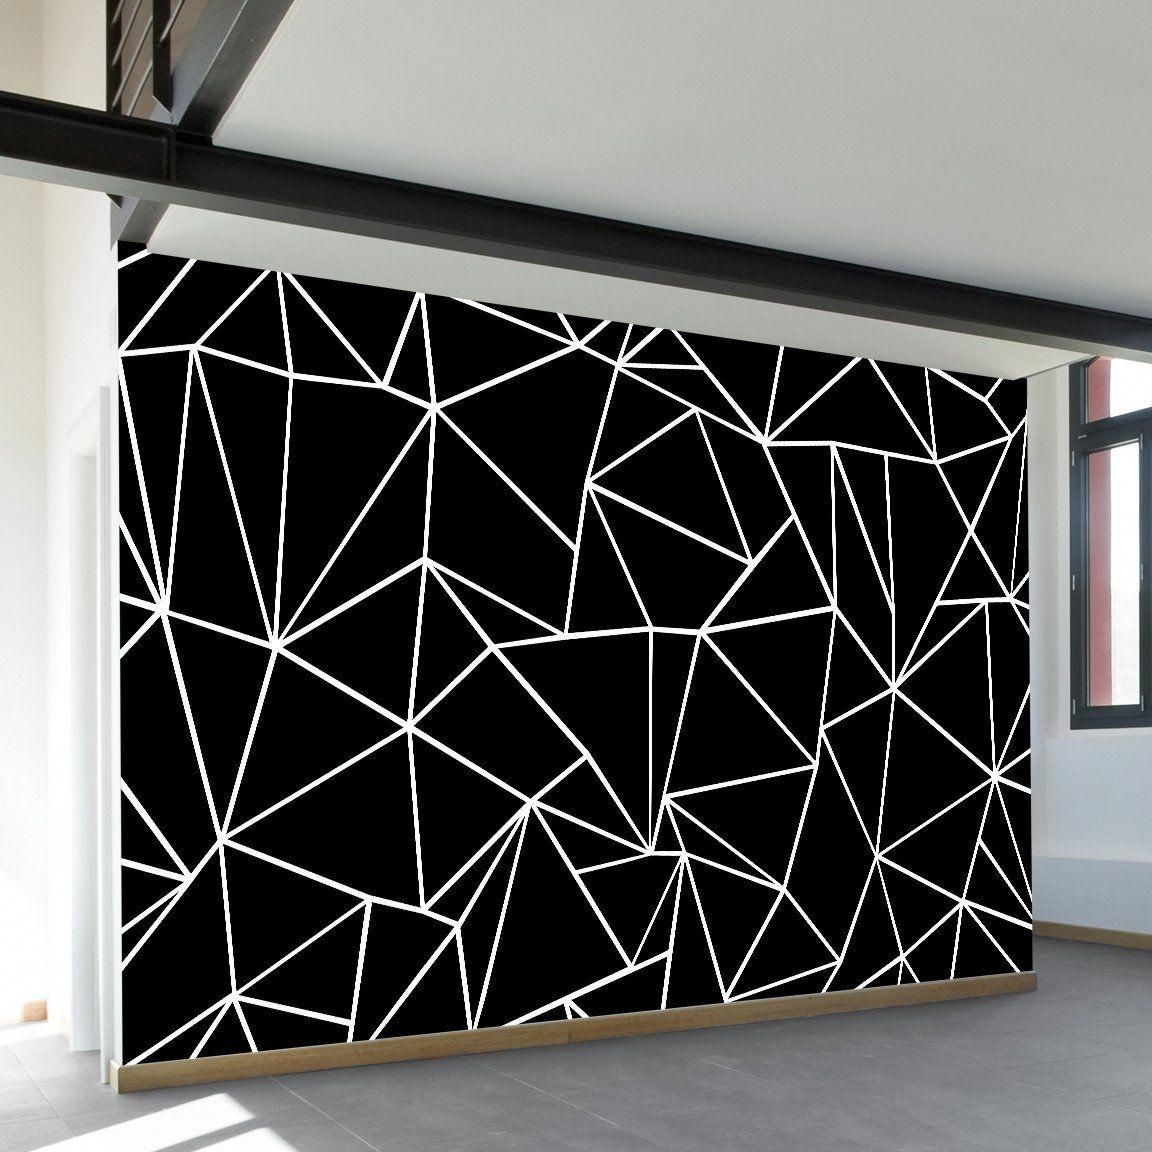 Outline For Accent Wall: Ab Outlines Black Wall Mural In 2020